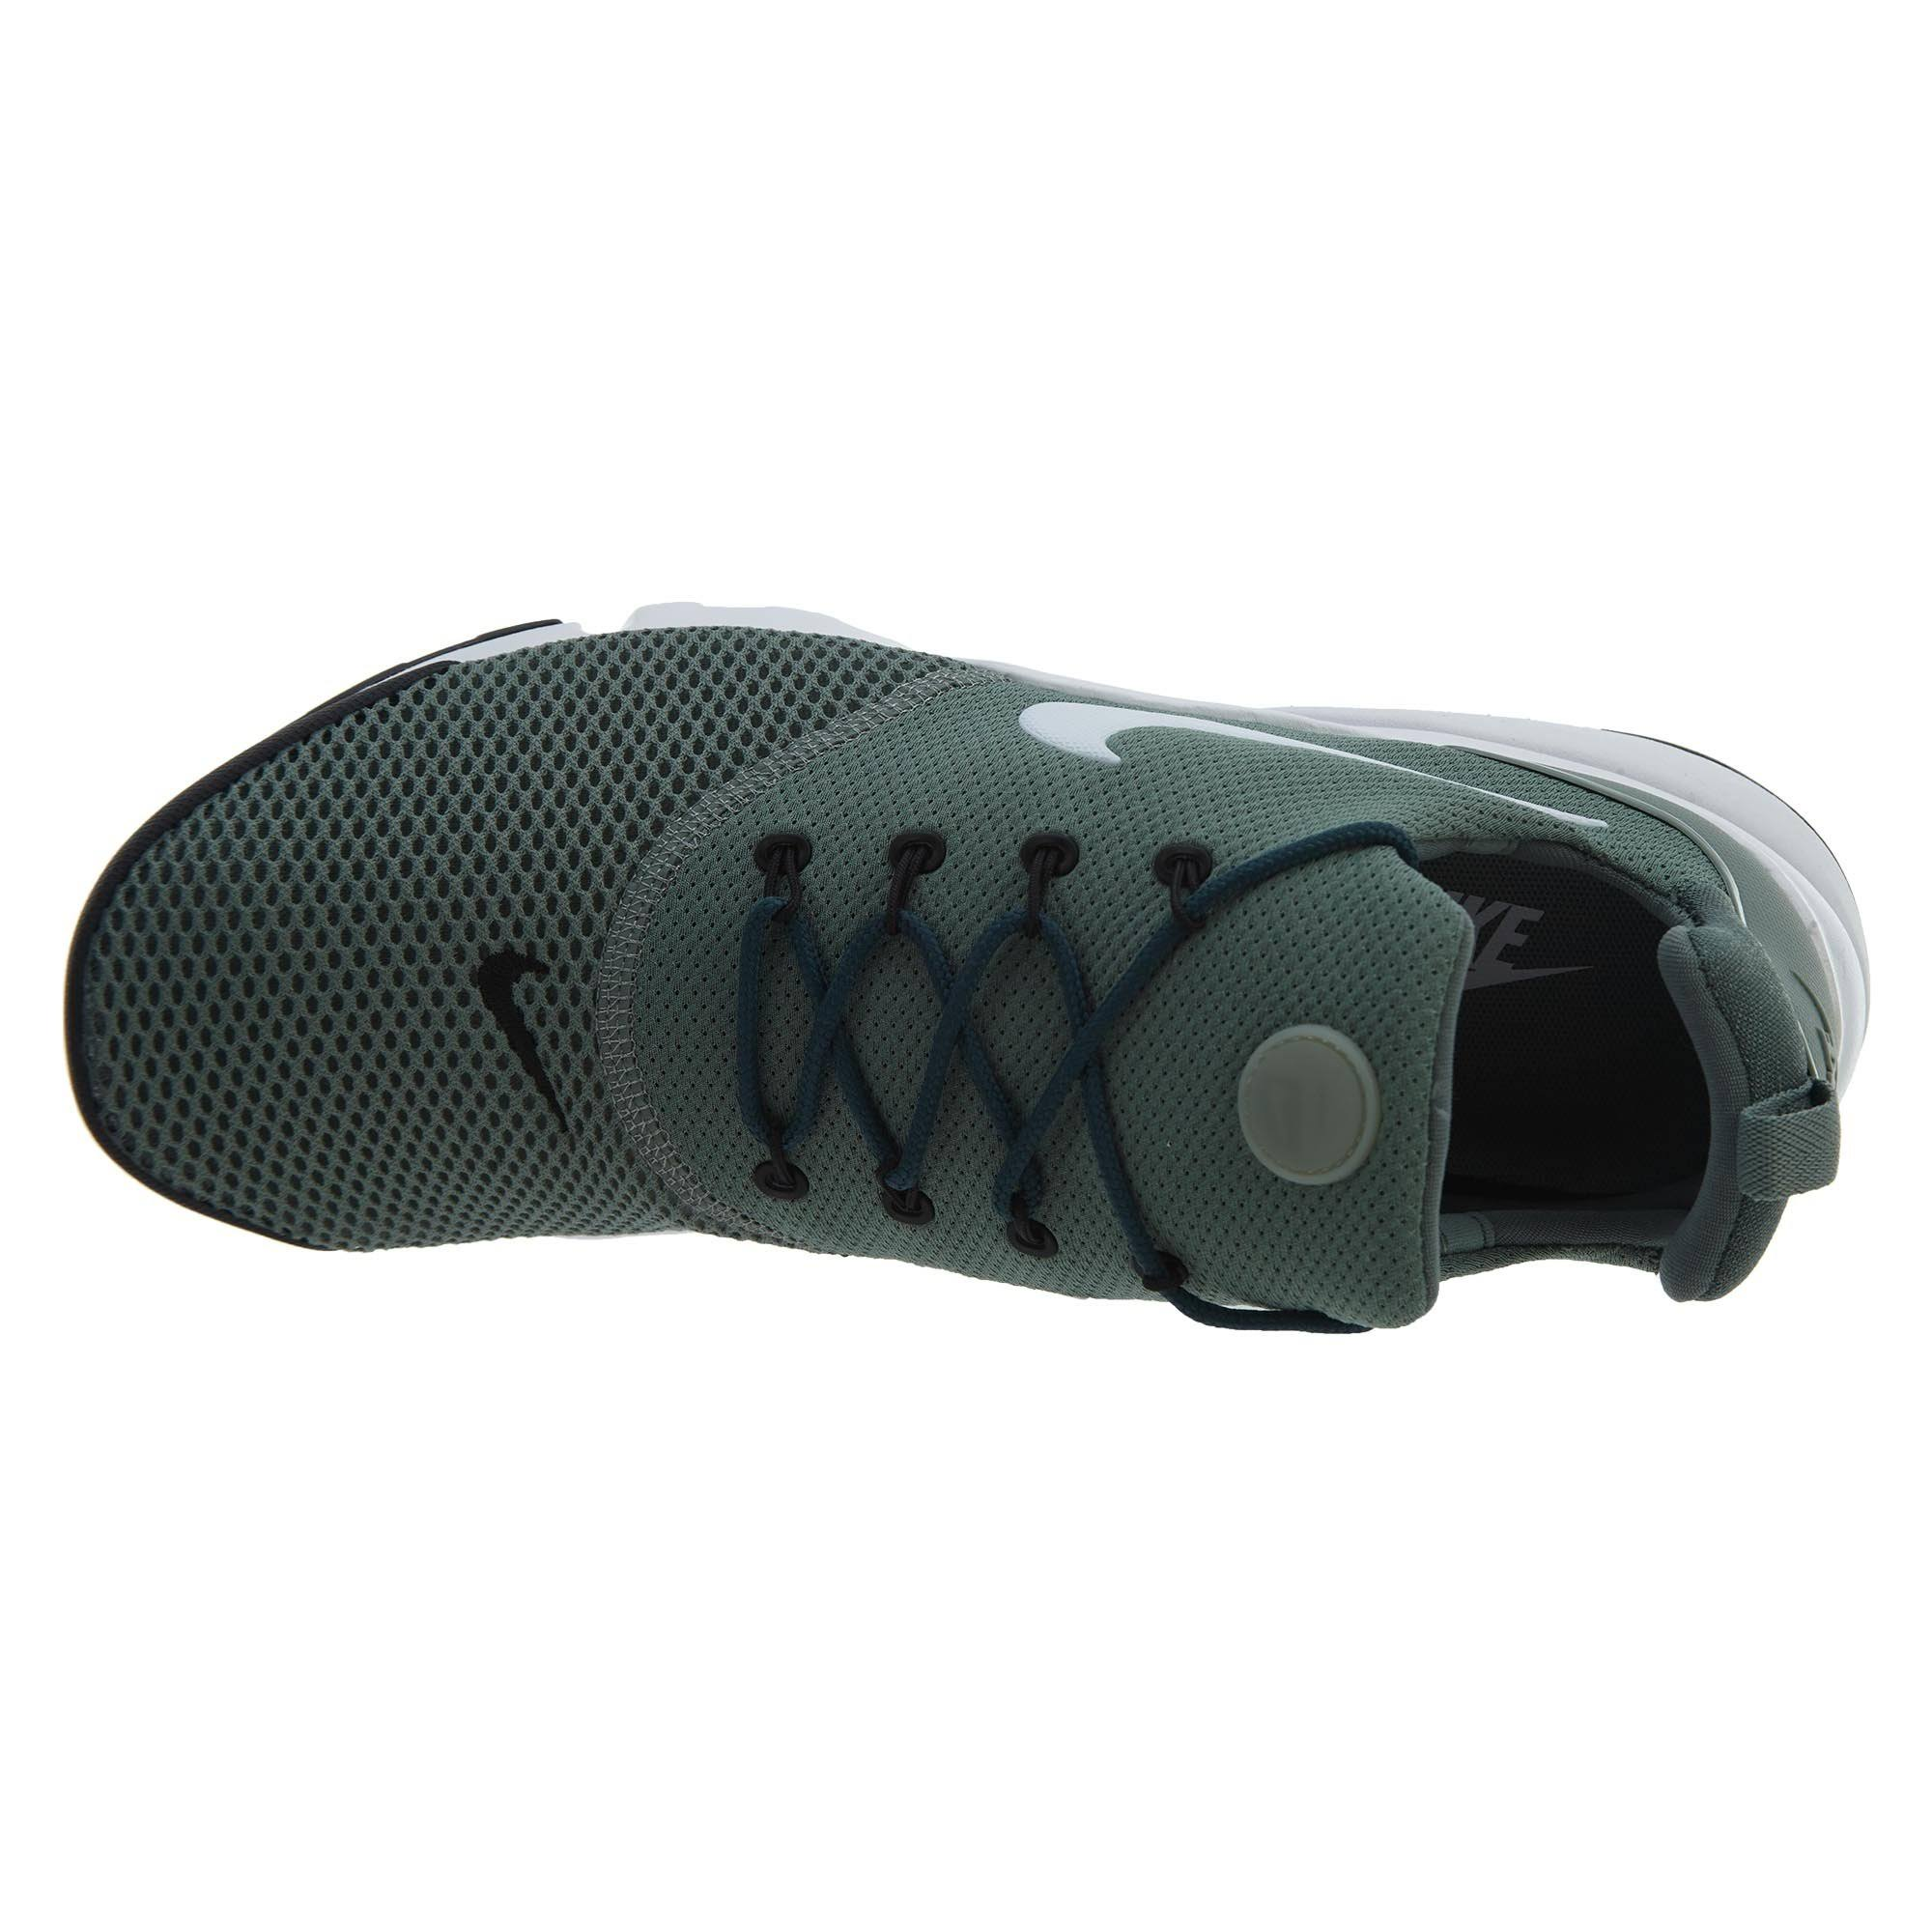 Fly Correr Presto Lace Up Zapatos Nike Low Trail Para Top Hombre fq5FXUw